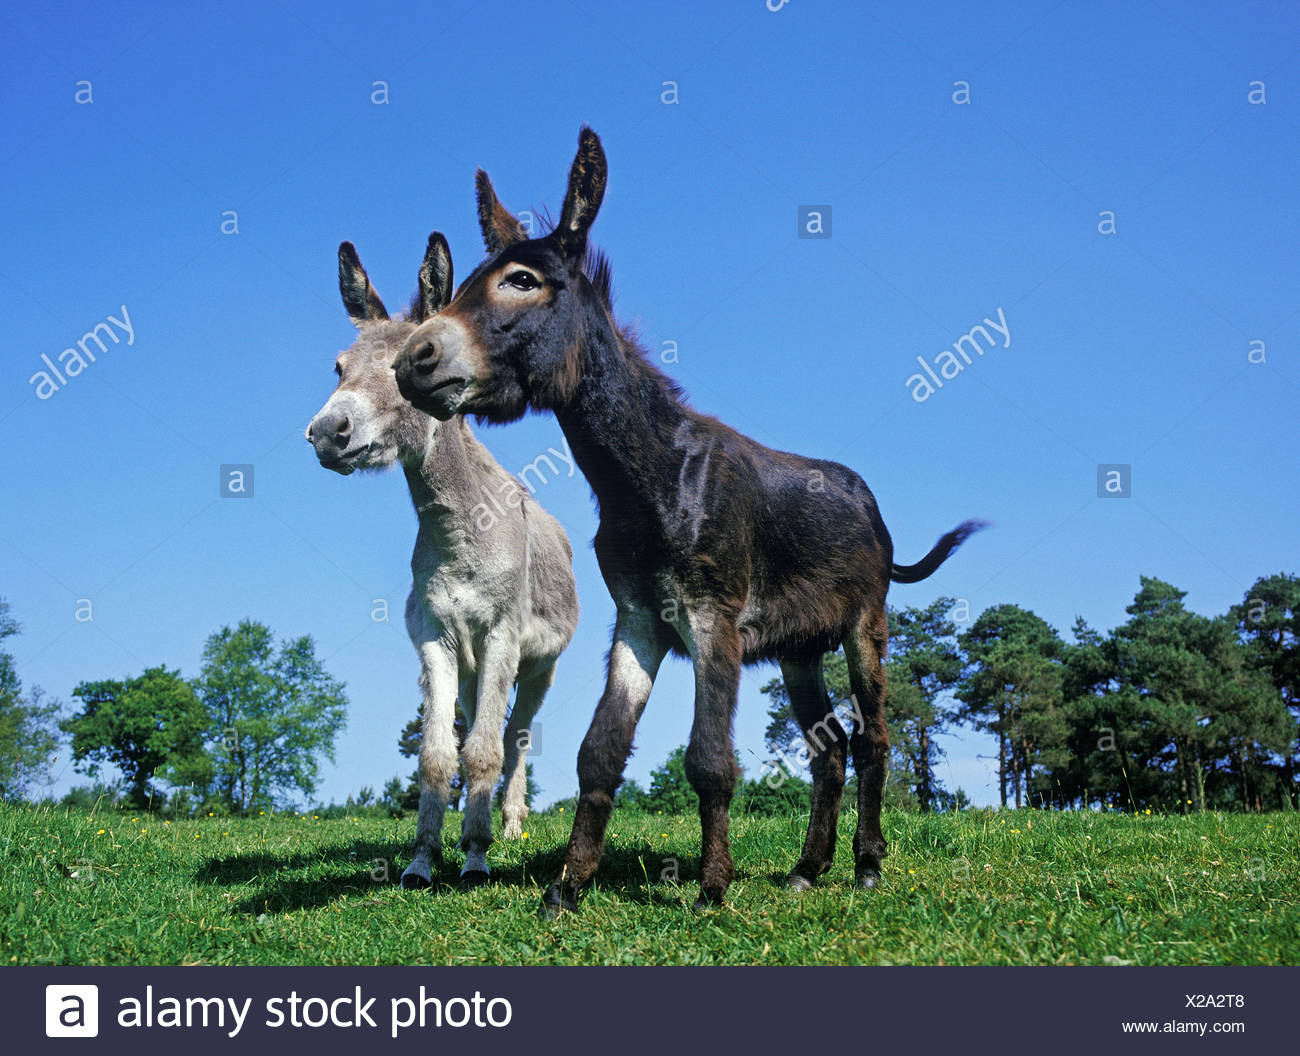 French grey donkey and house donkey,meadow, Stock Photo